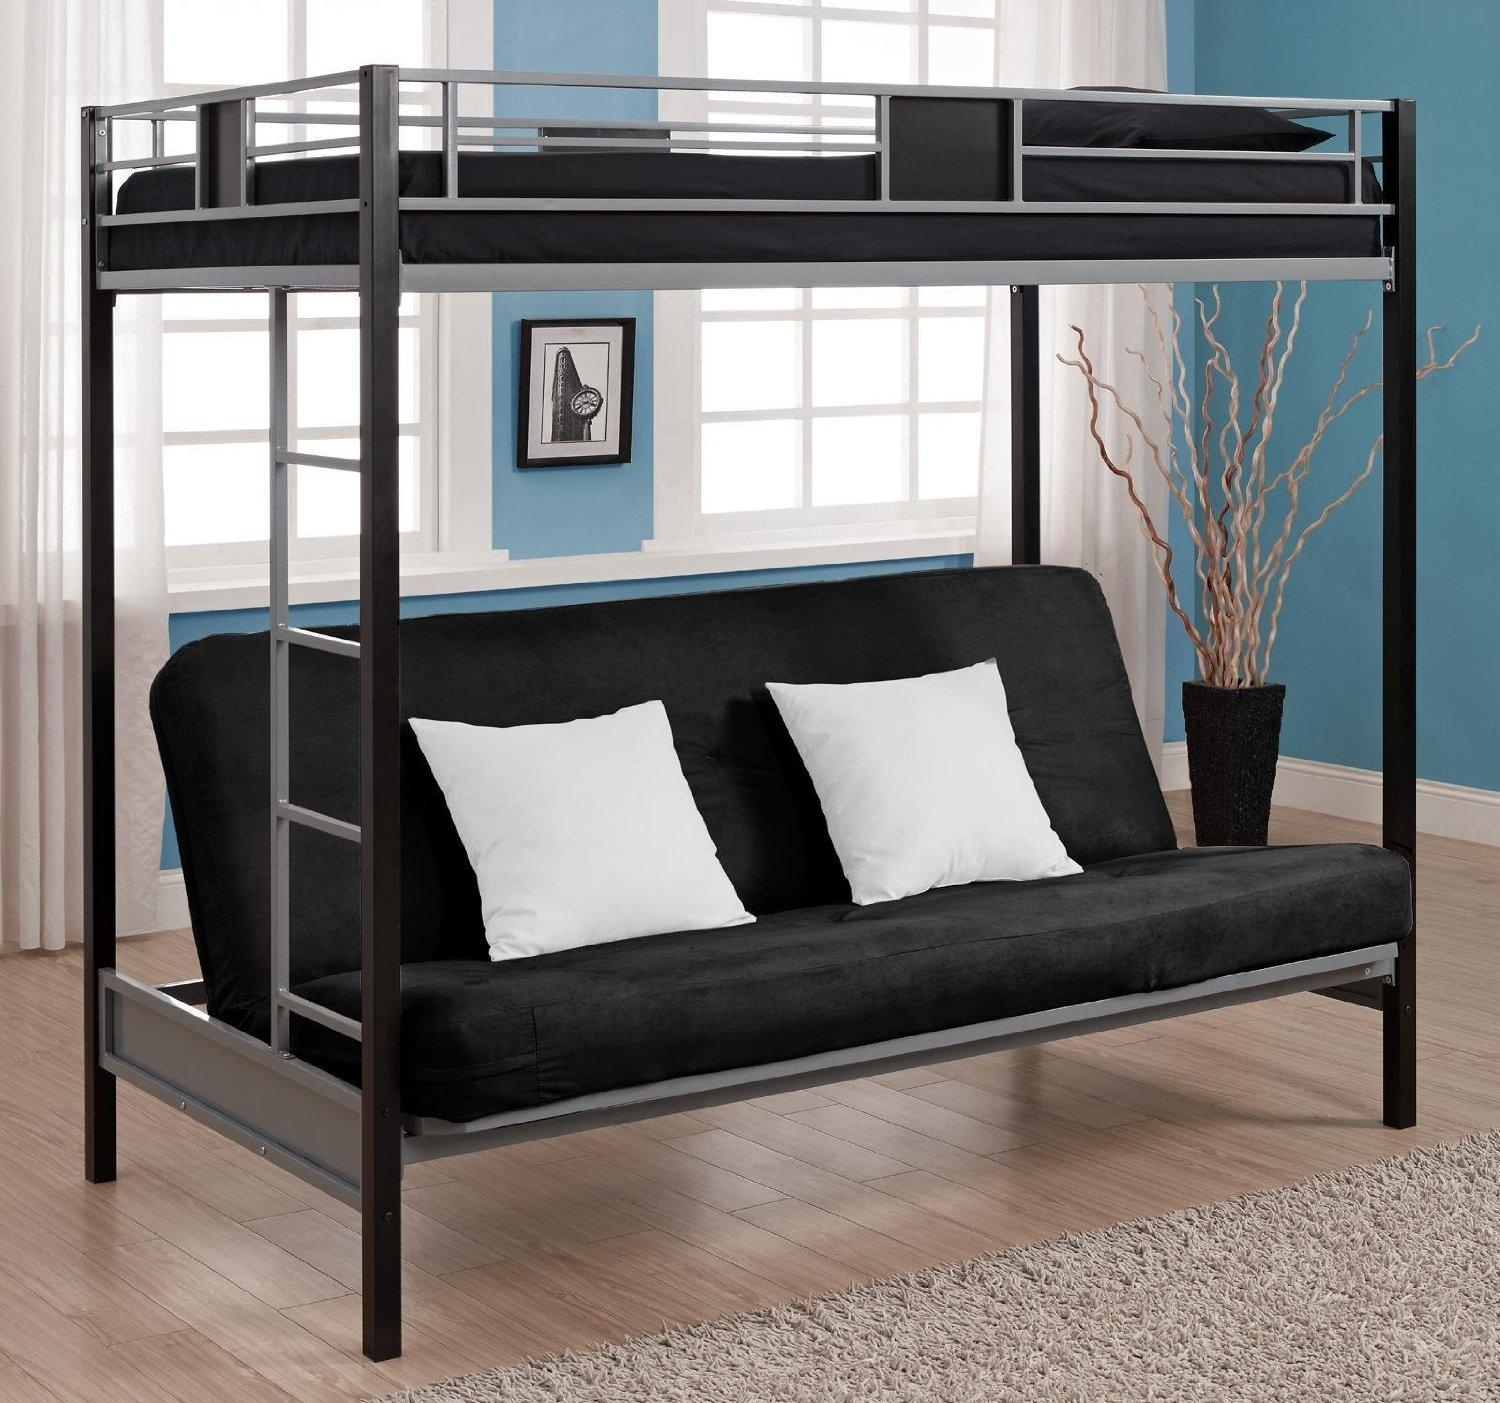 Sofas Center : Loft With Sofa Bedroom White Wooden Bunk Beds Desk With Regard To Sofa Bunk Beds (View 5 of 20)